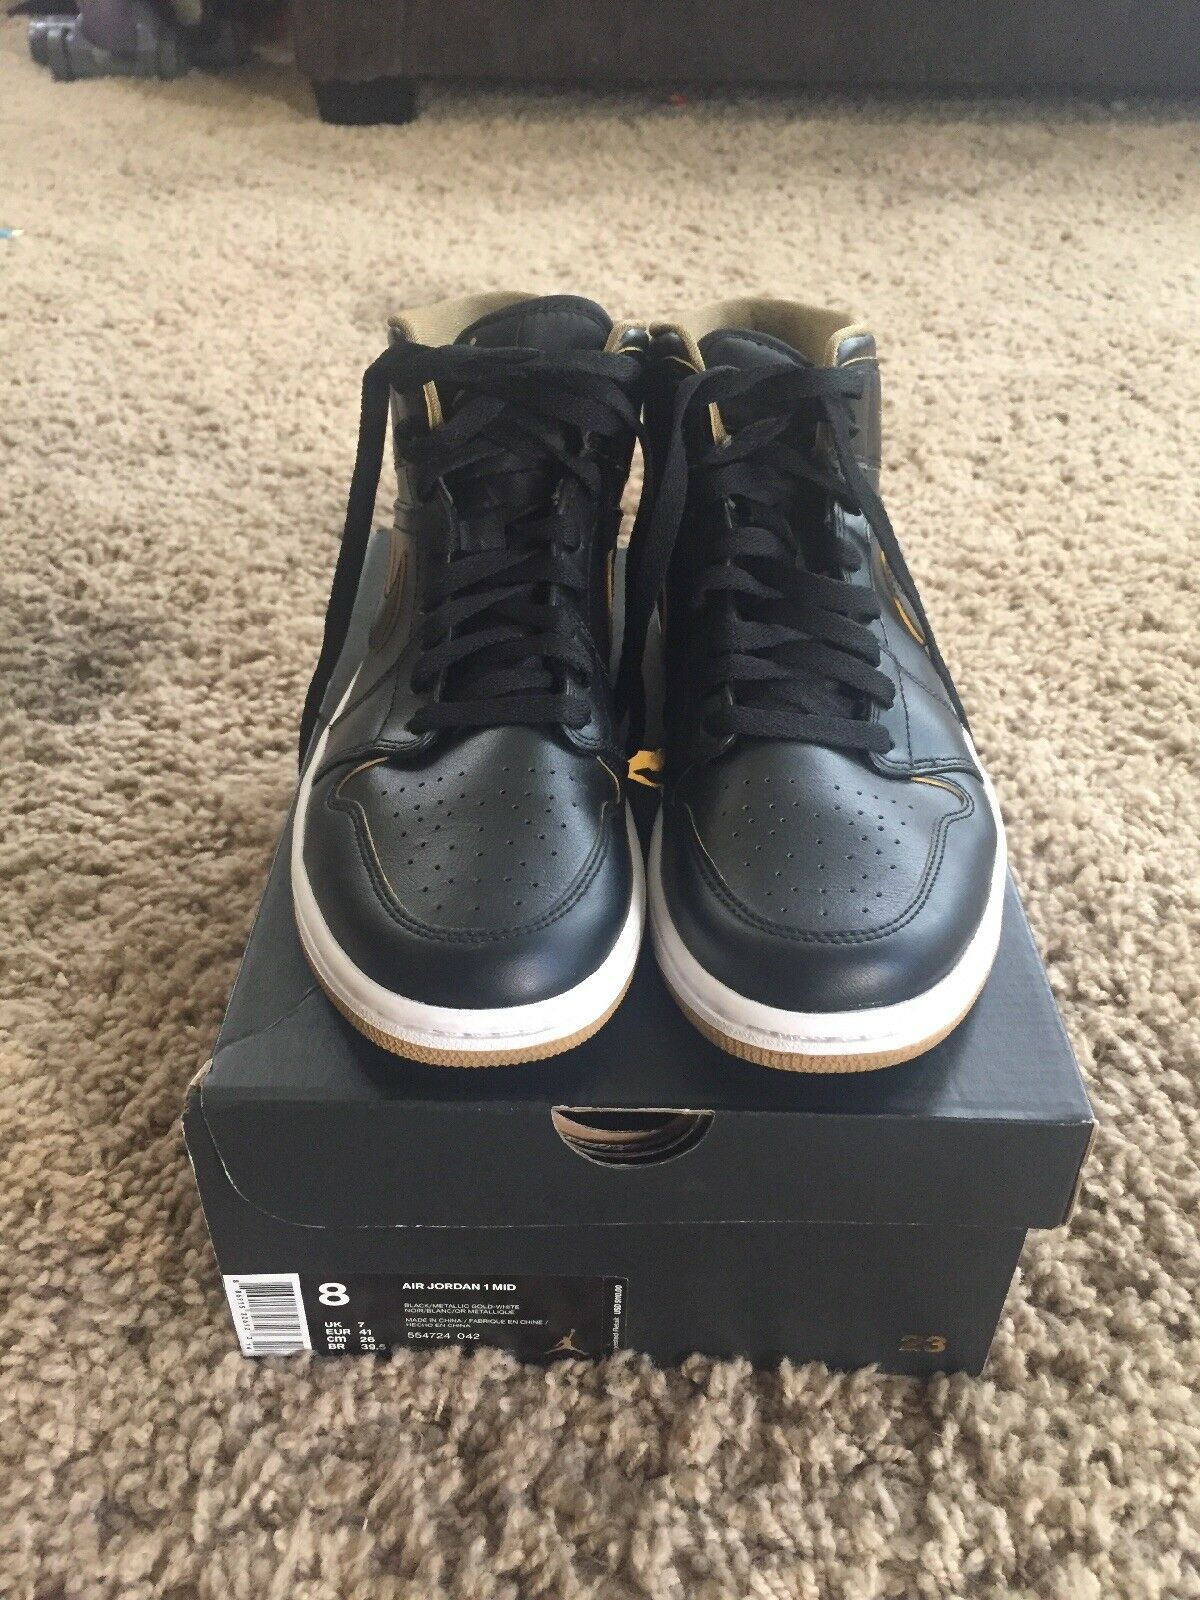 Air Jordan 1 Wore once With Box Size 8